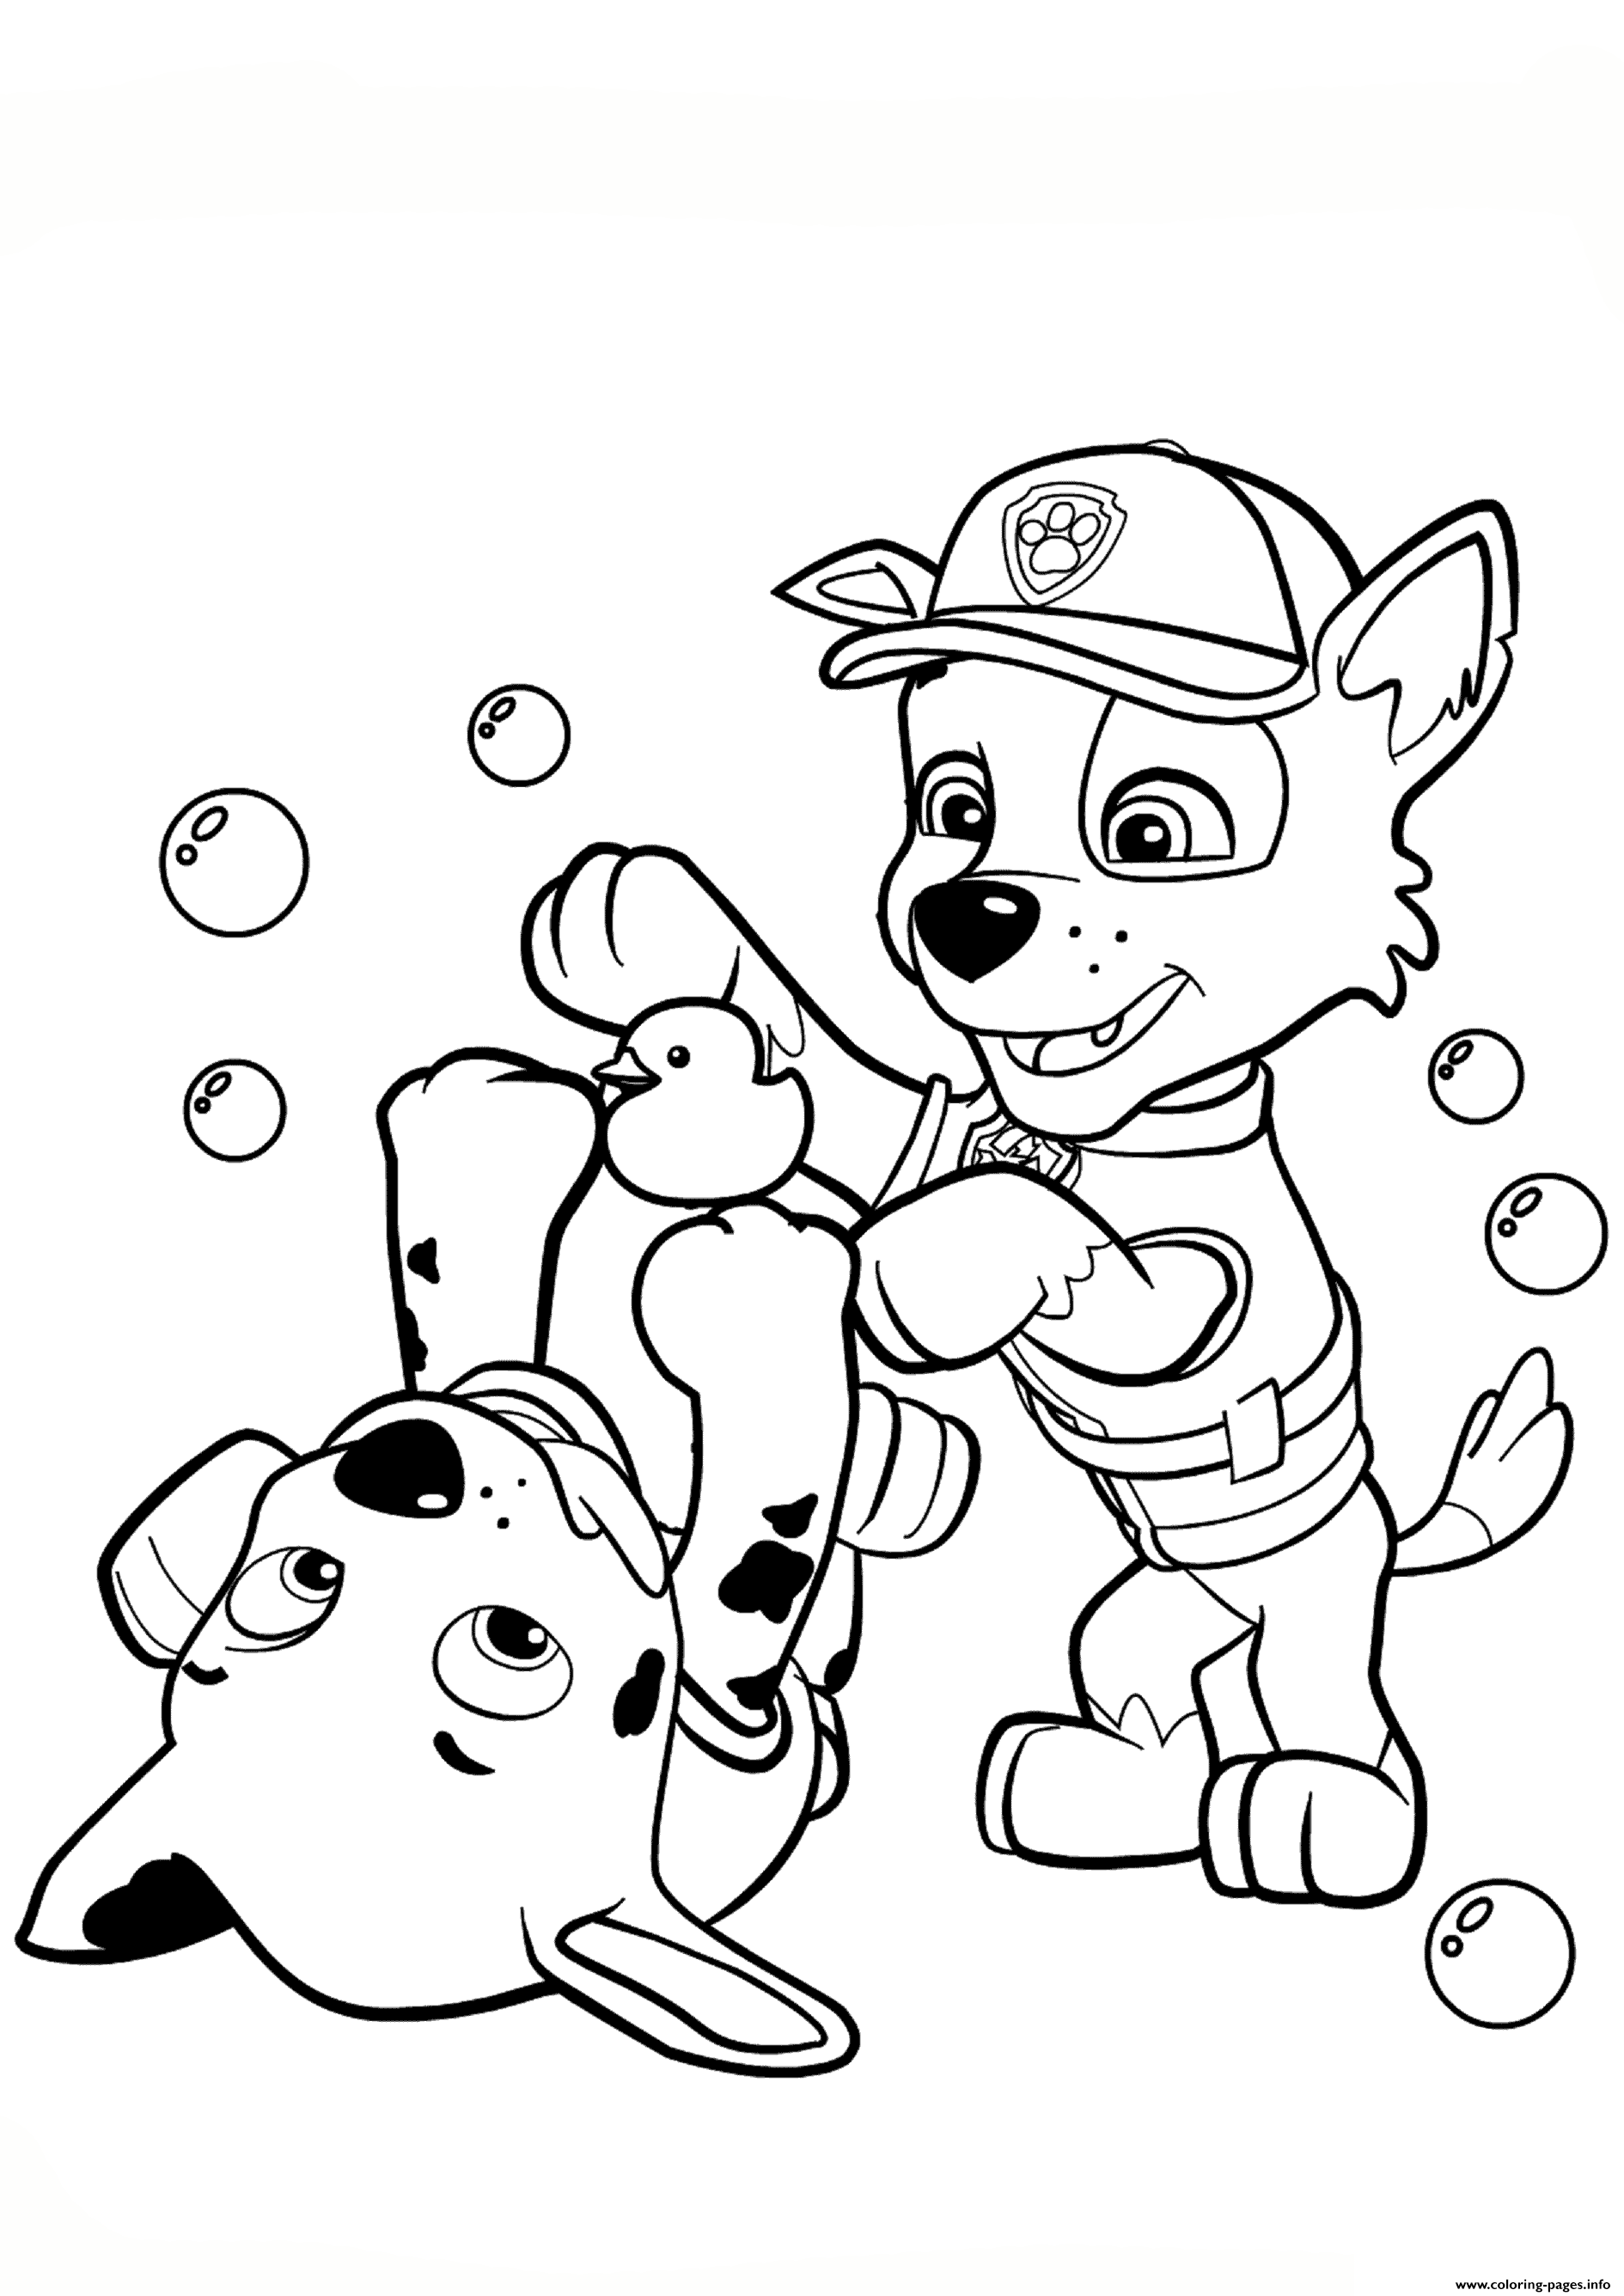 Print paw patrol rocky and marshall